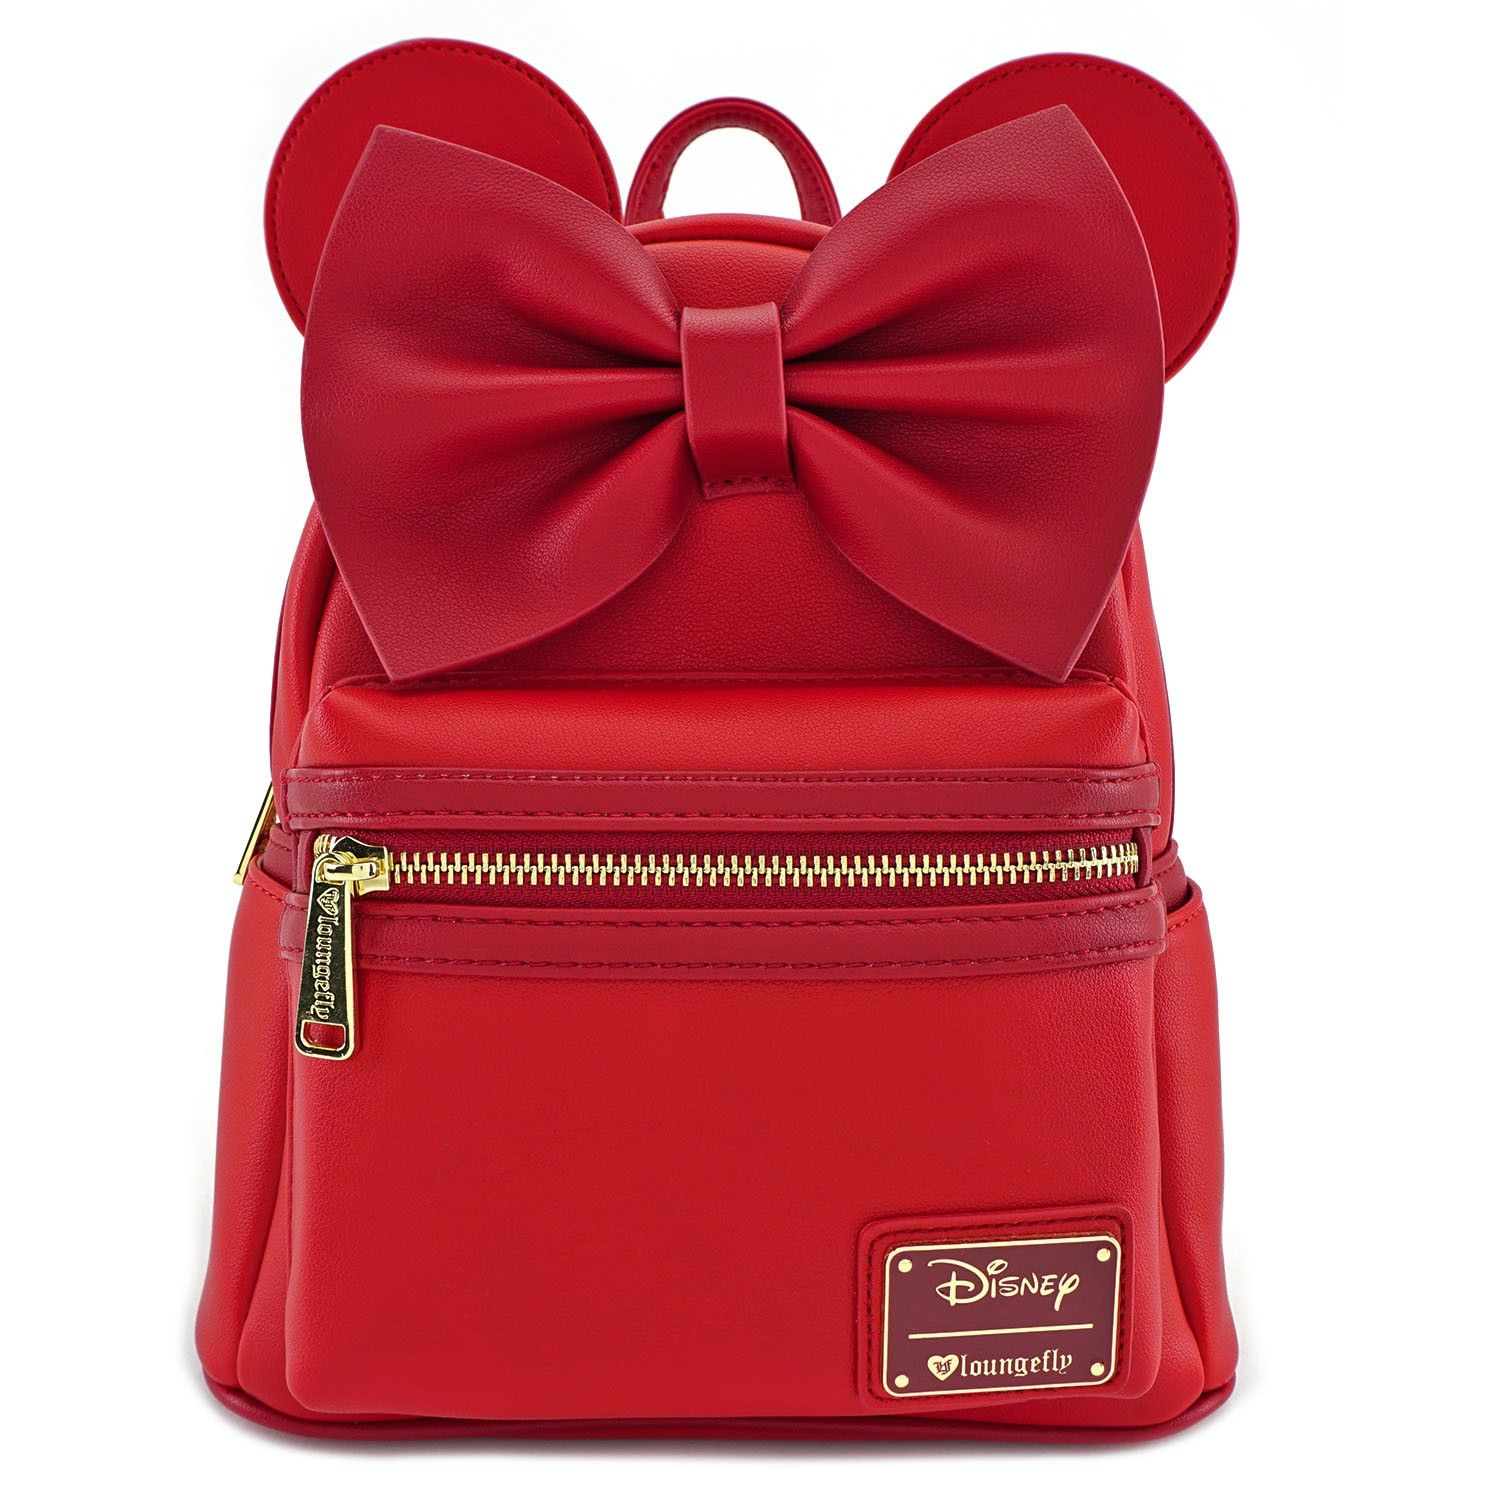 Licensed Leather Minnie Mouse Style Small 2-in-1 Cross-body bag// Mini Backpack